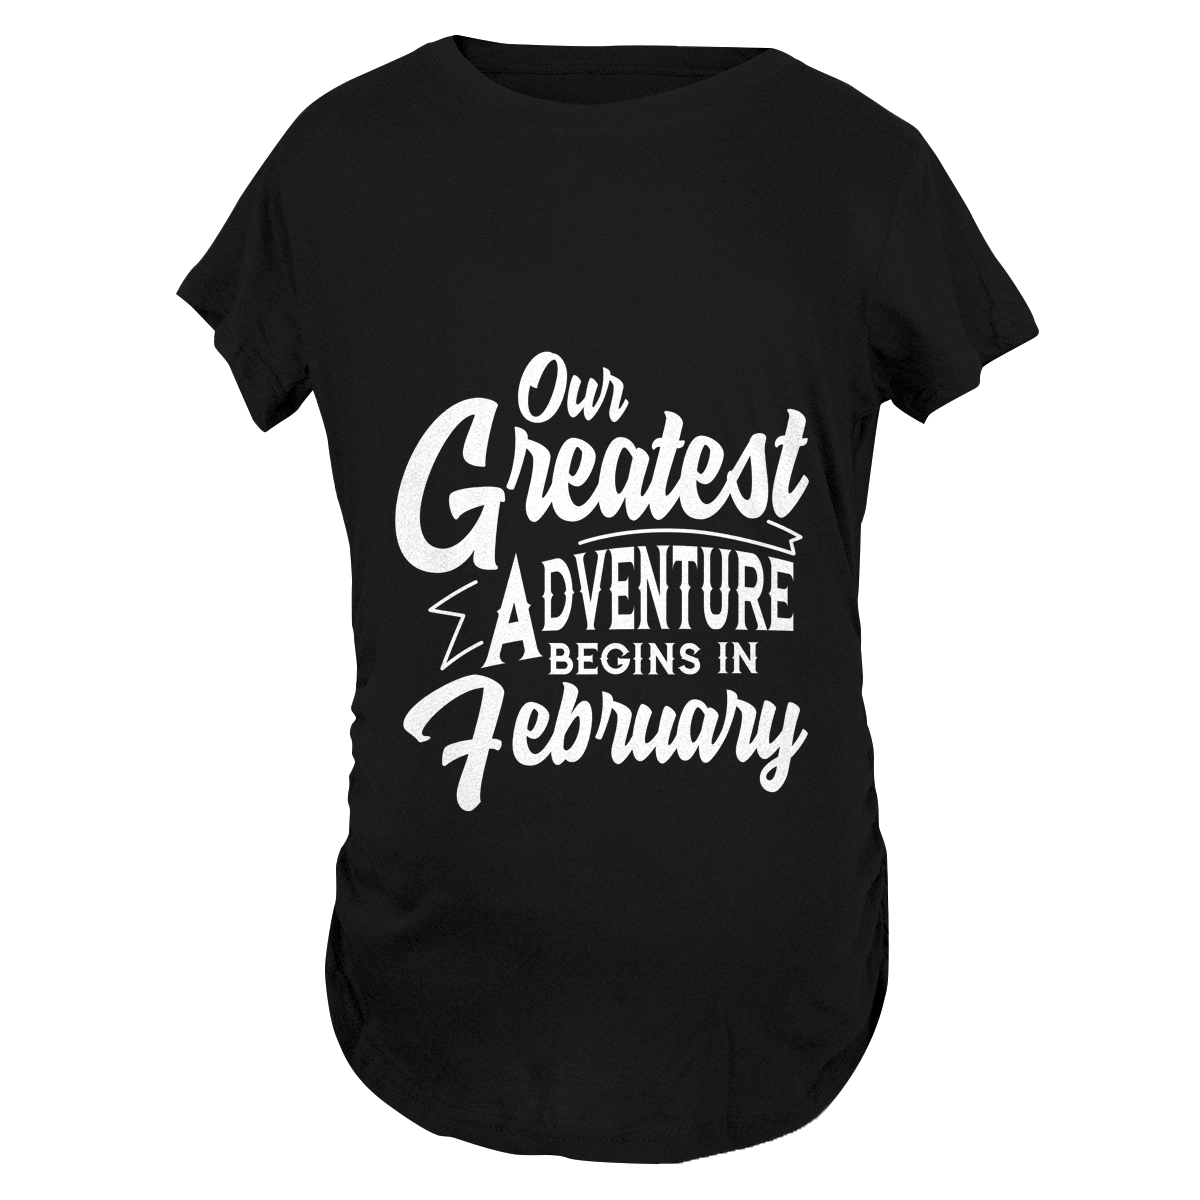 Our Greatest Adventure Begins in February Maternity T-Shirt